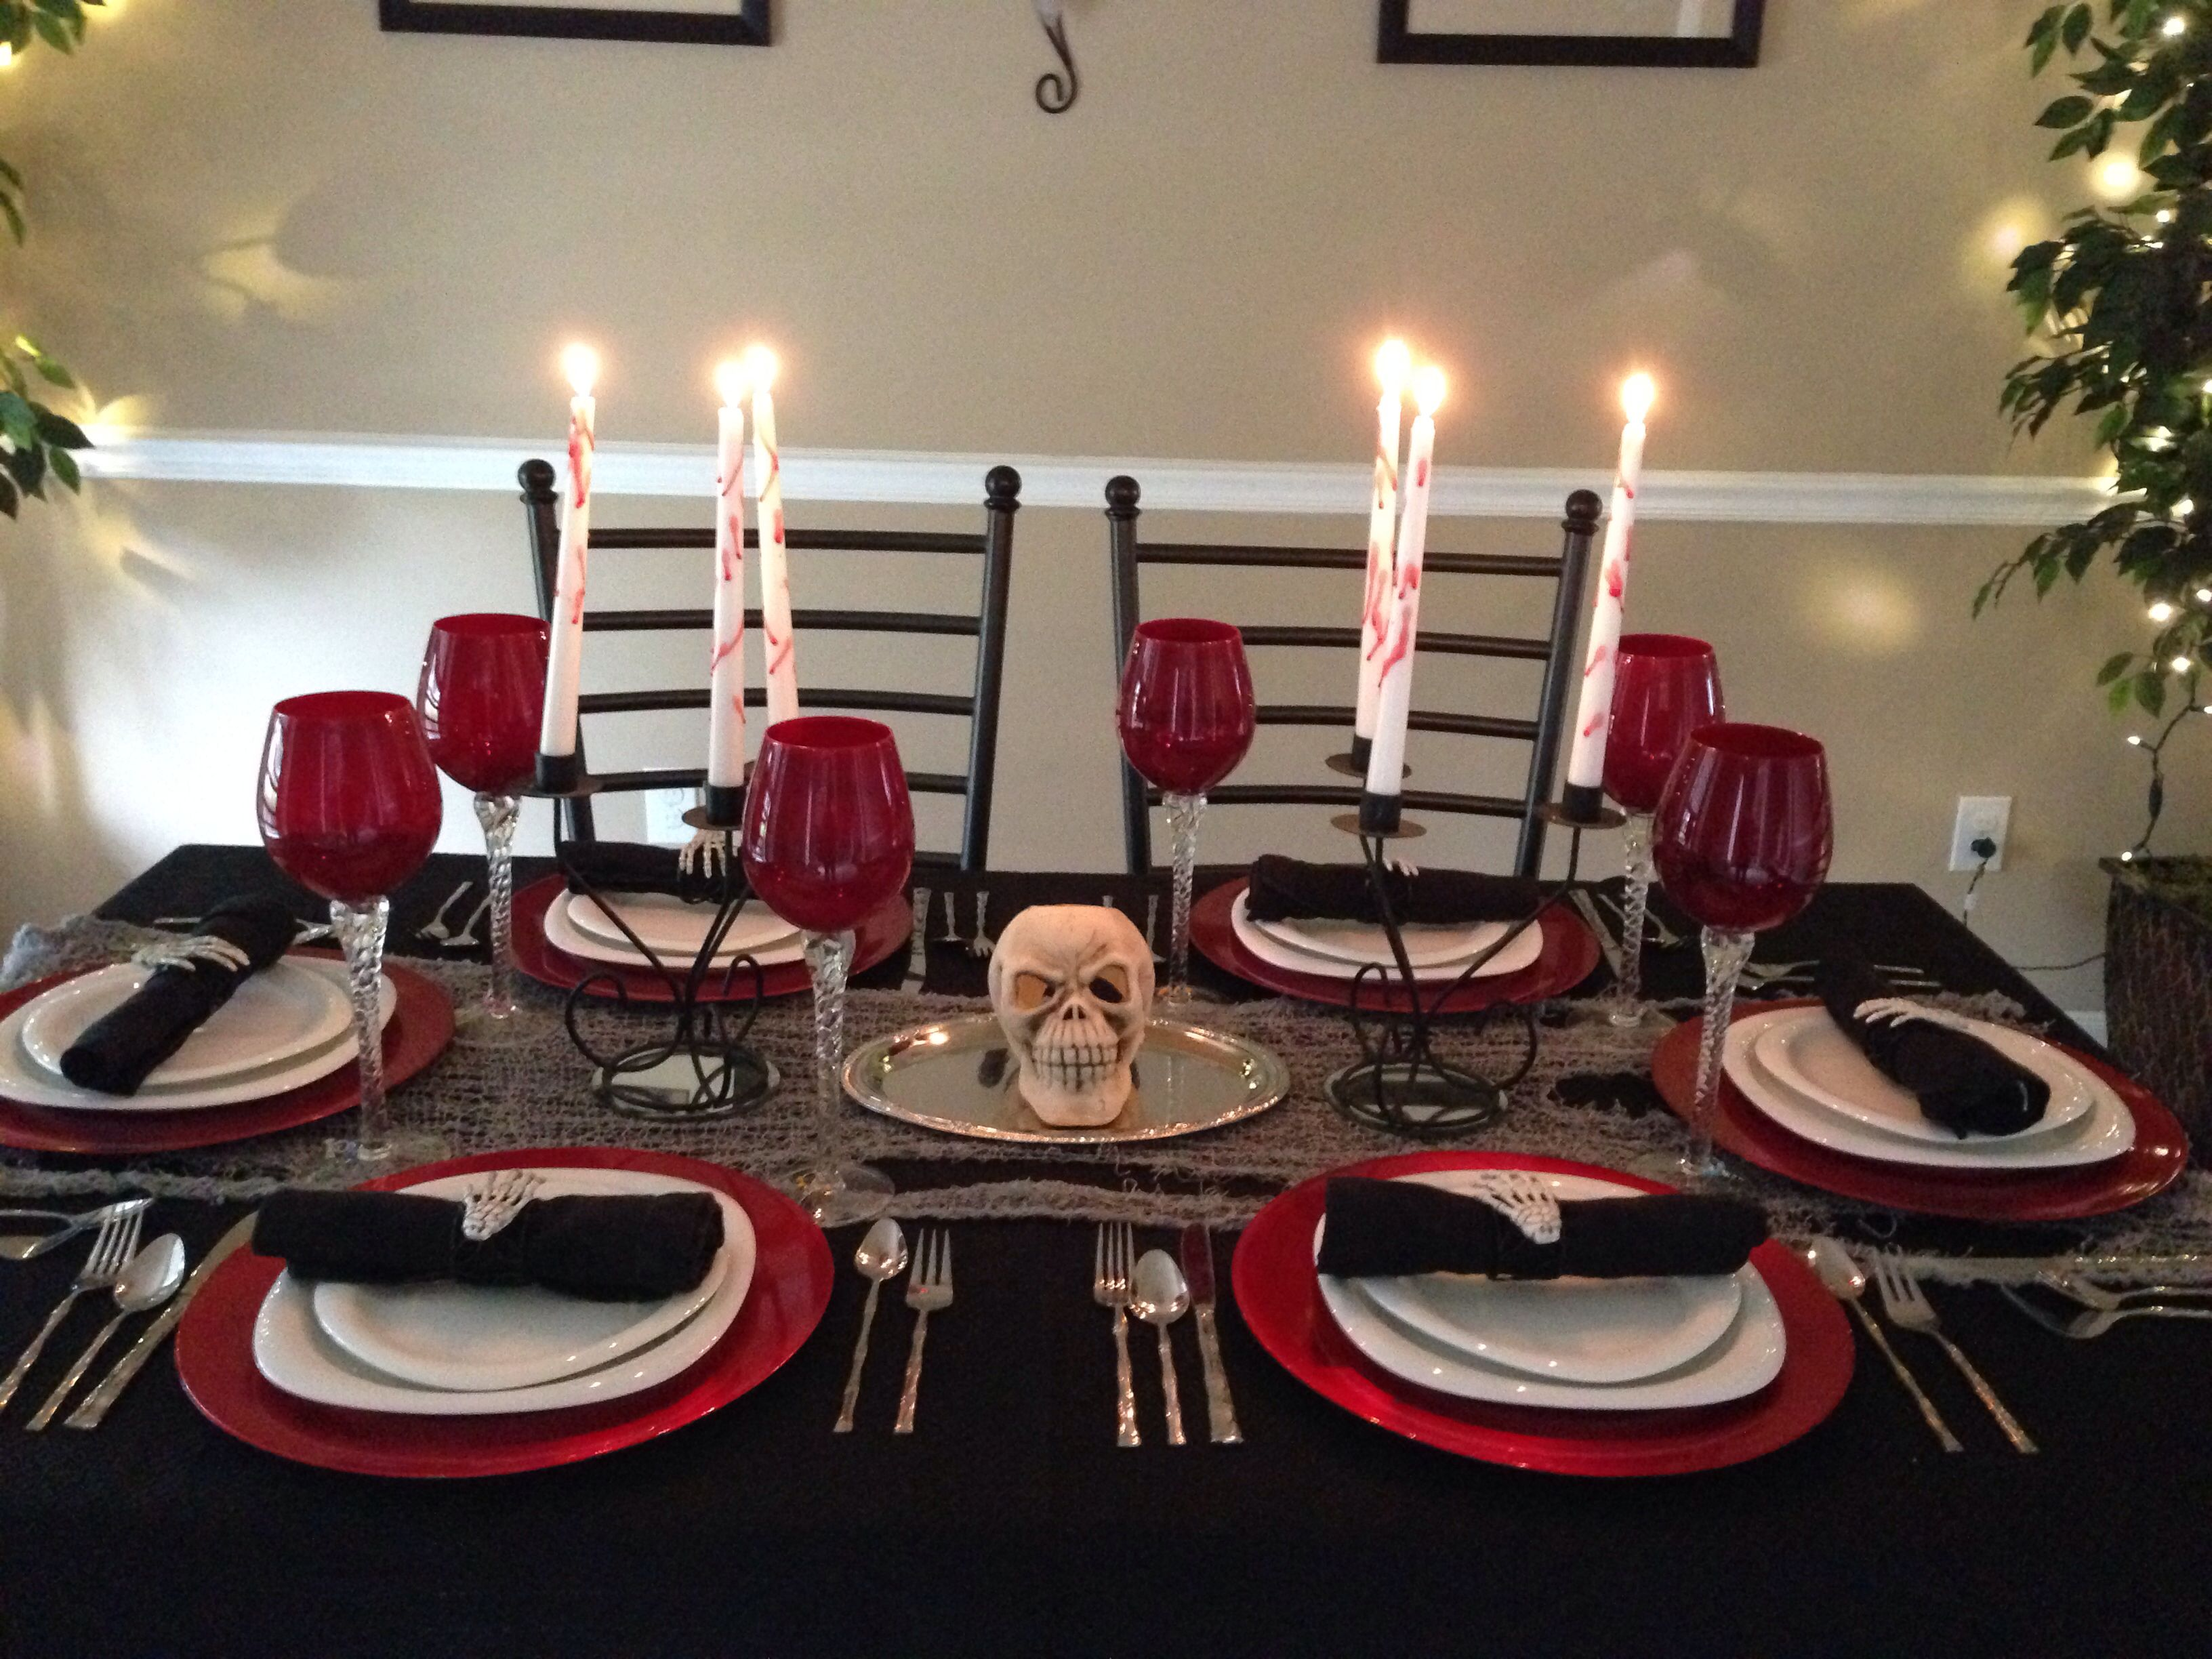 Halloween Halloween Pinterest Halloween dinner parties - Halloween Table Decorations Pinterest